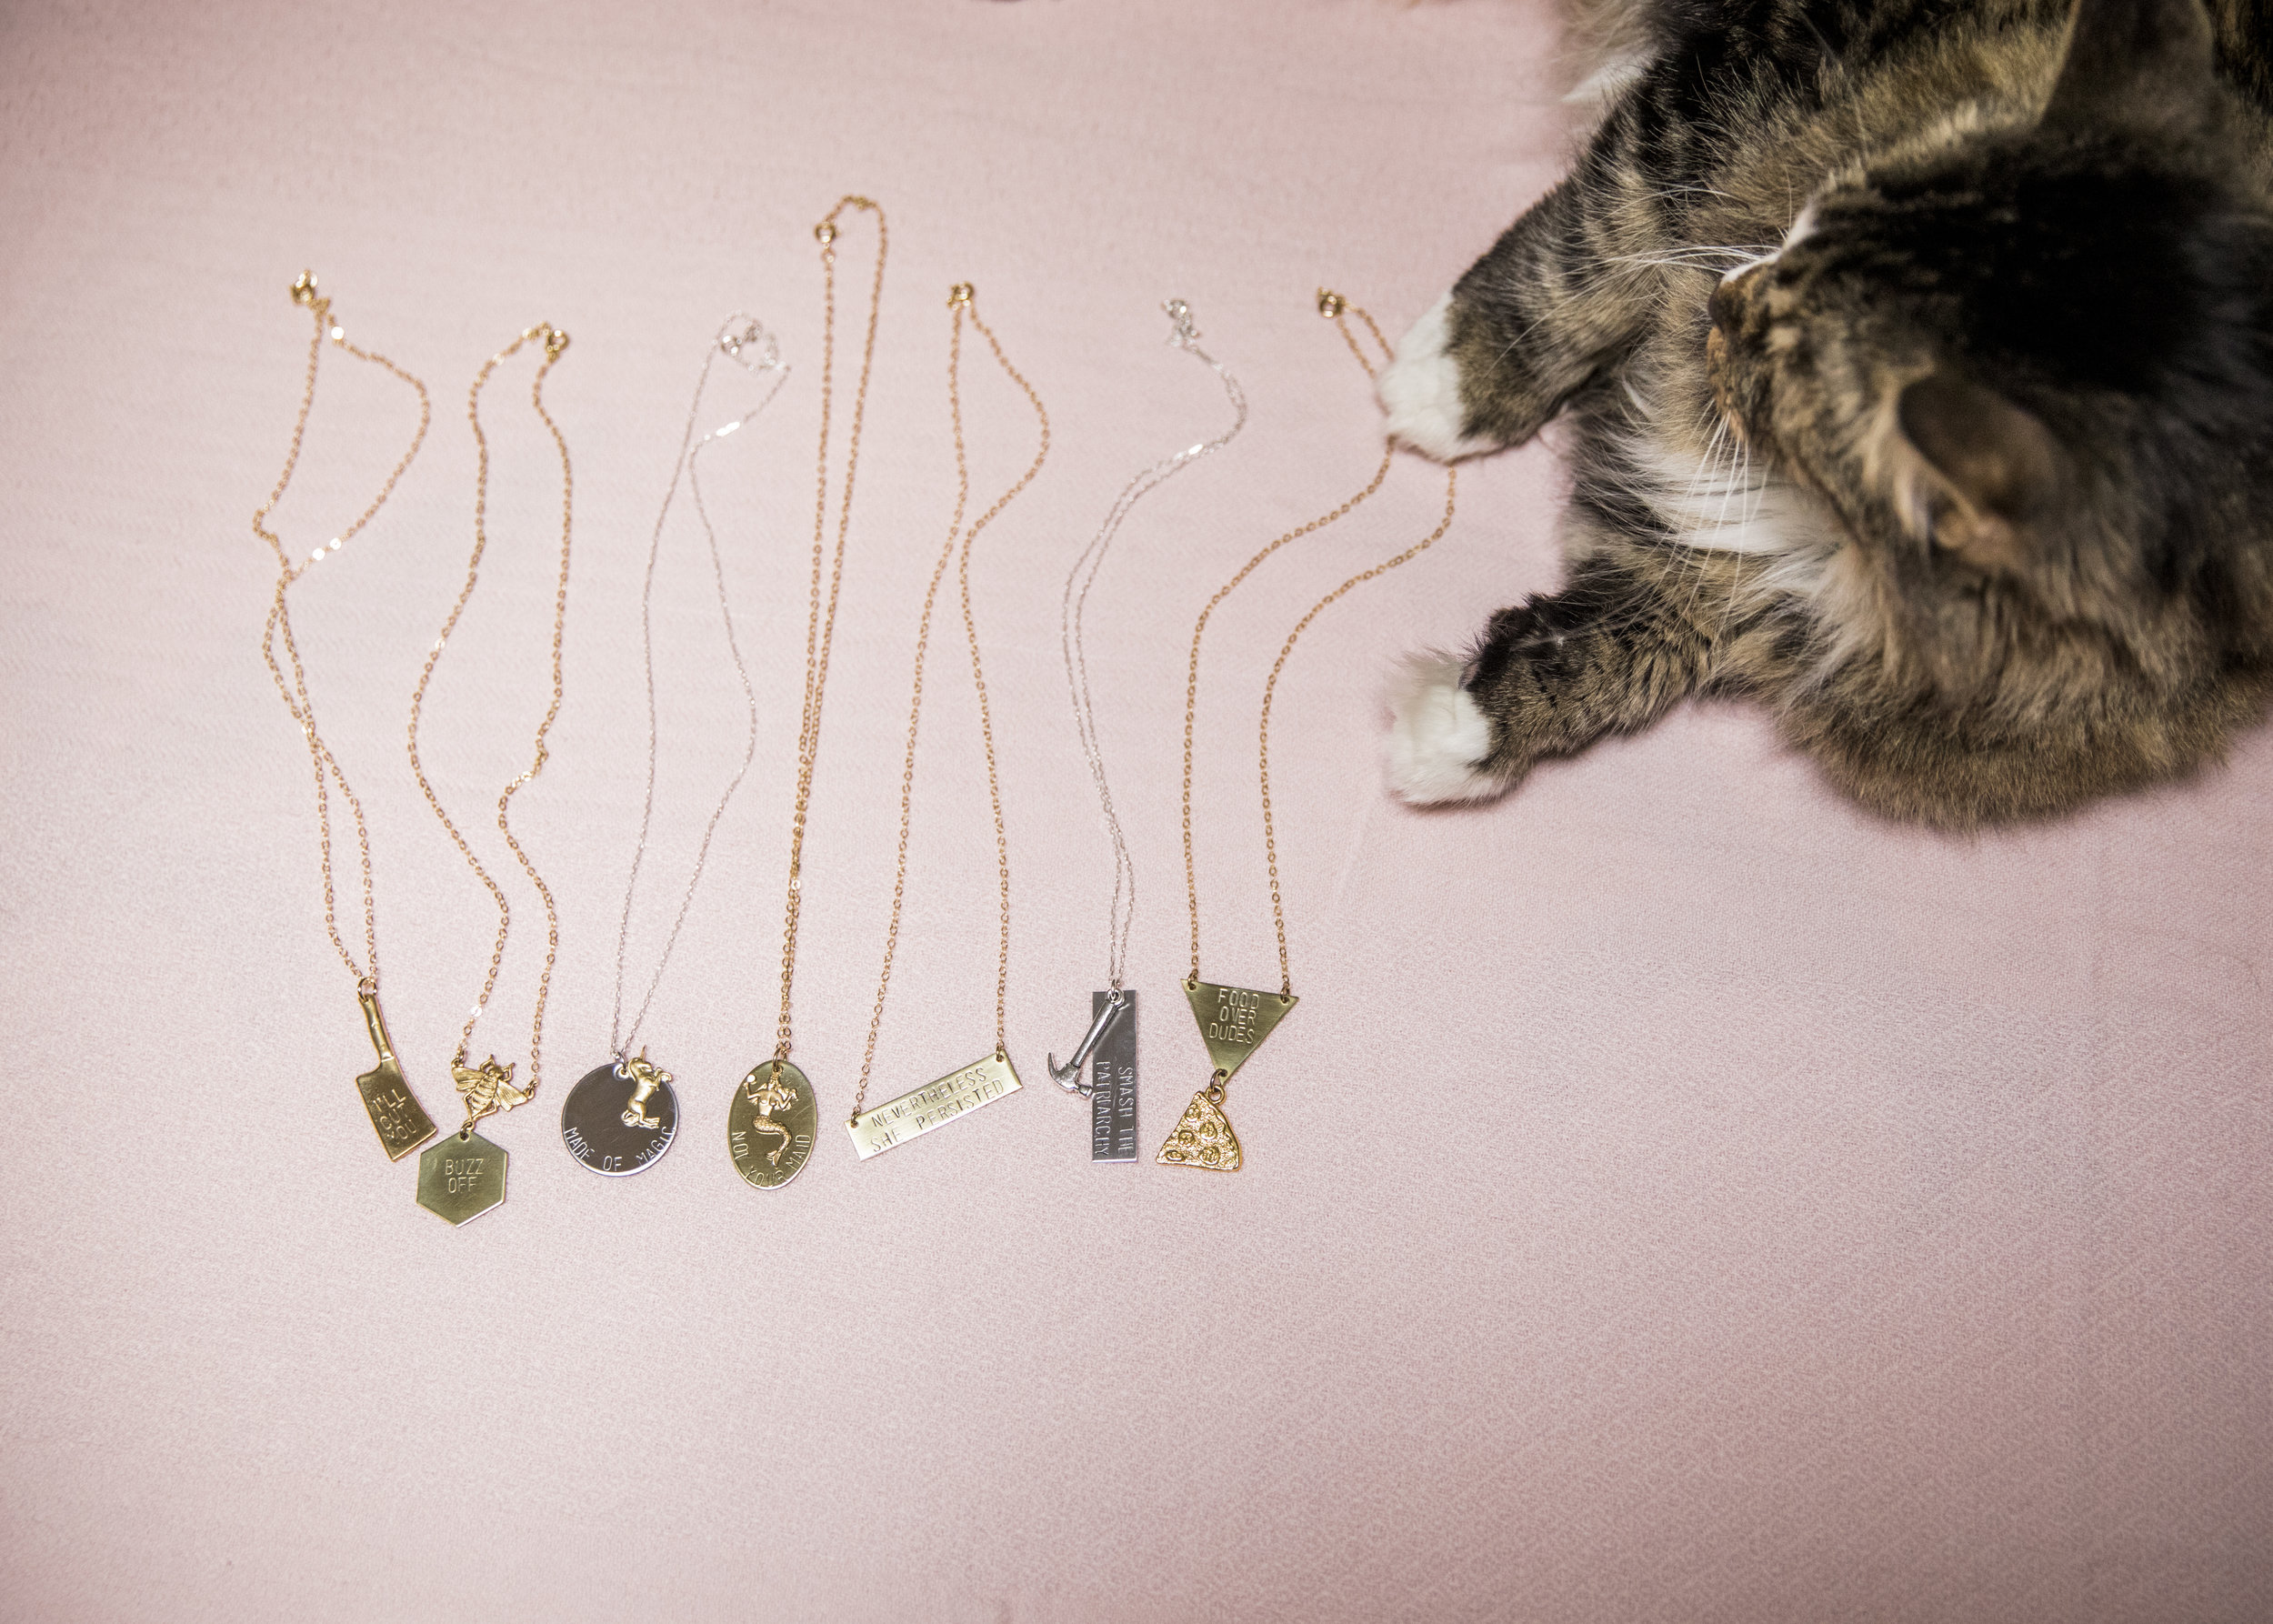 Betty the boy cat poses with necklaces by Arkansas jewelry designer Stacey Bowers of Bang-Up Betty jewelry.